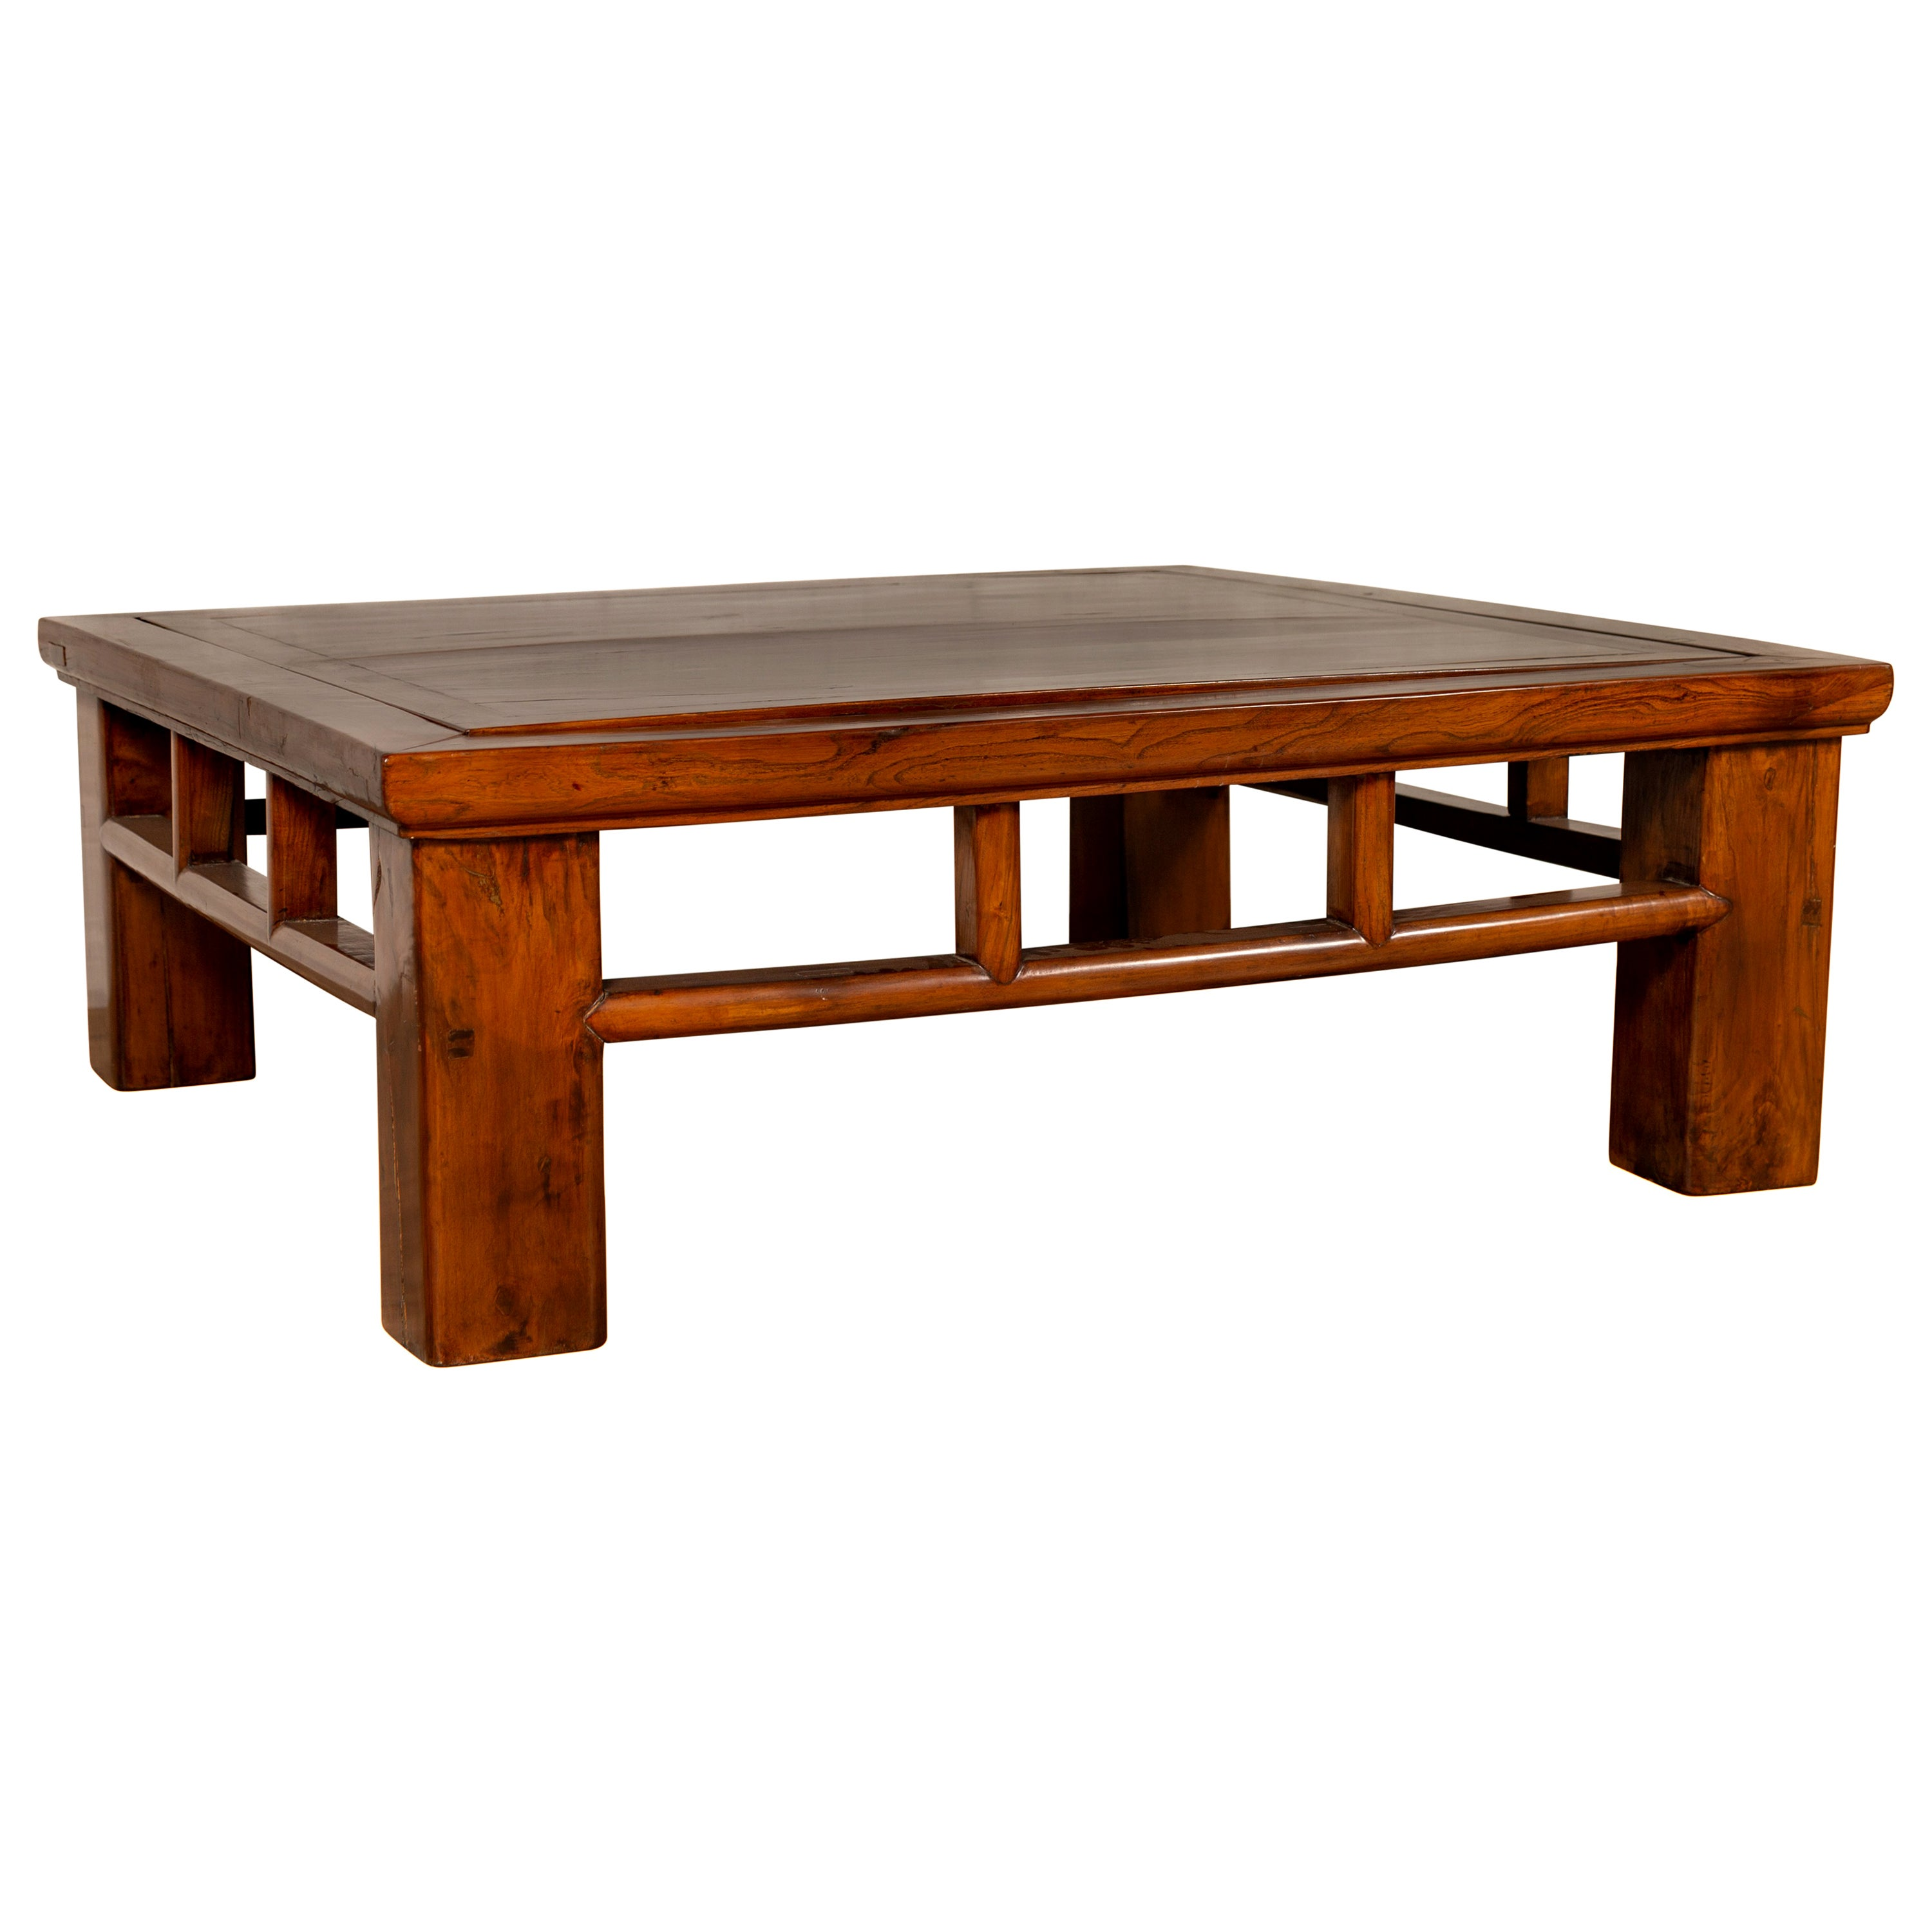 Chinese Qing Dynasty Style Elm Coffee Table with Reversible Top and Strut Motifs